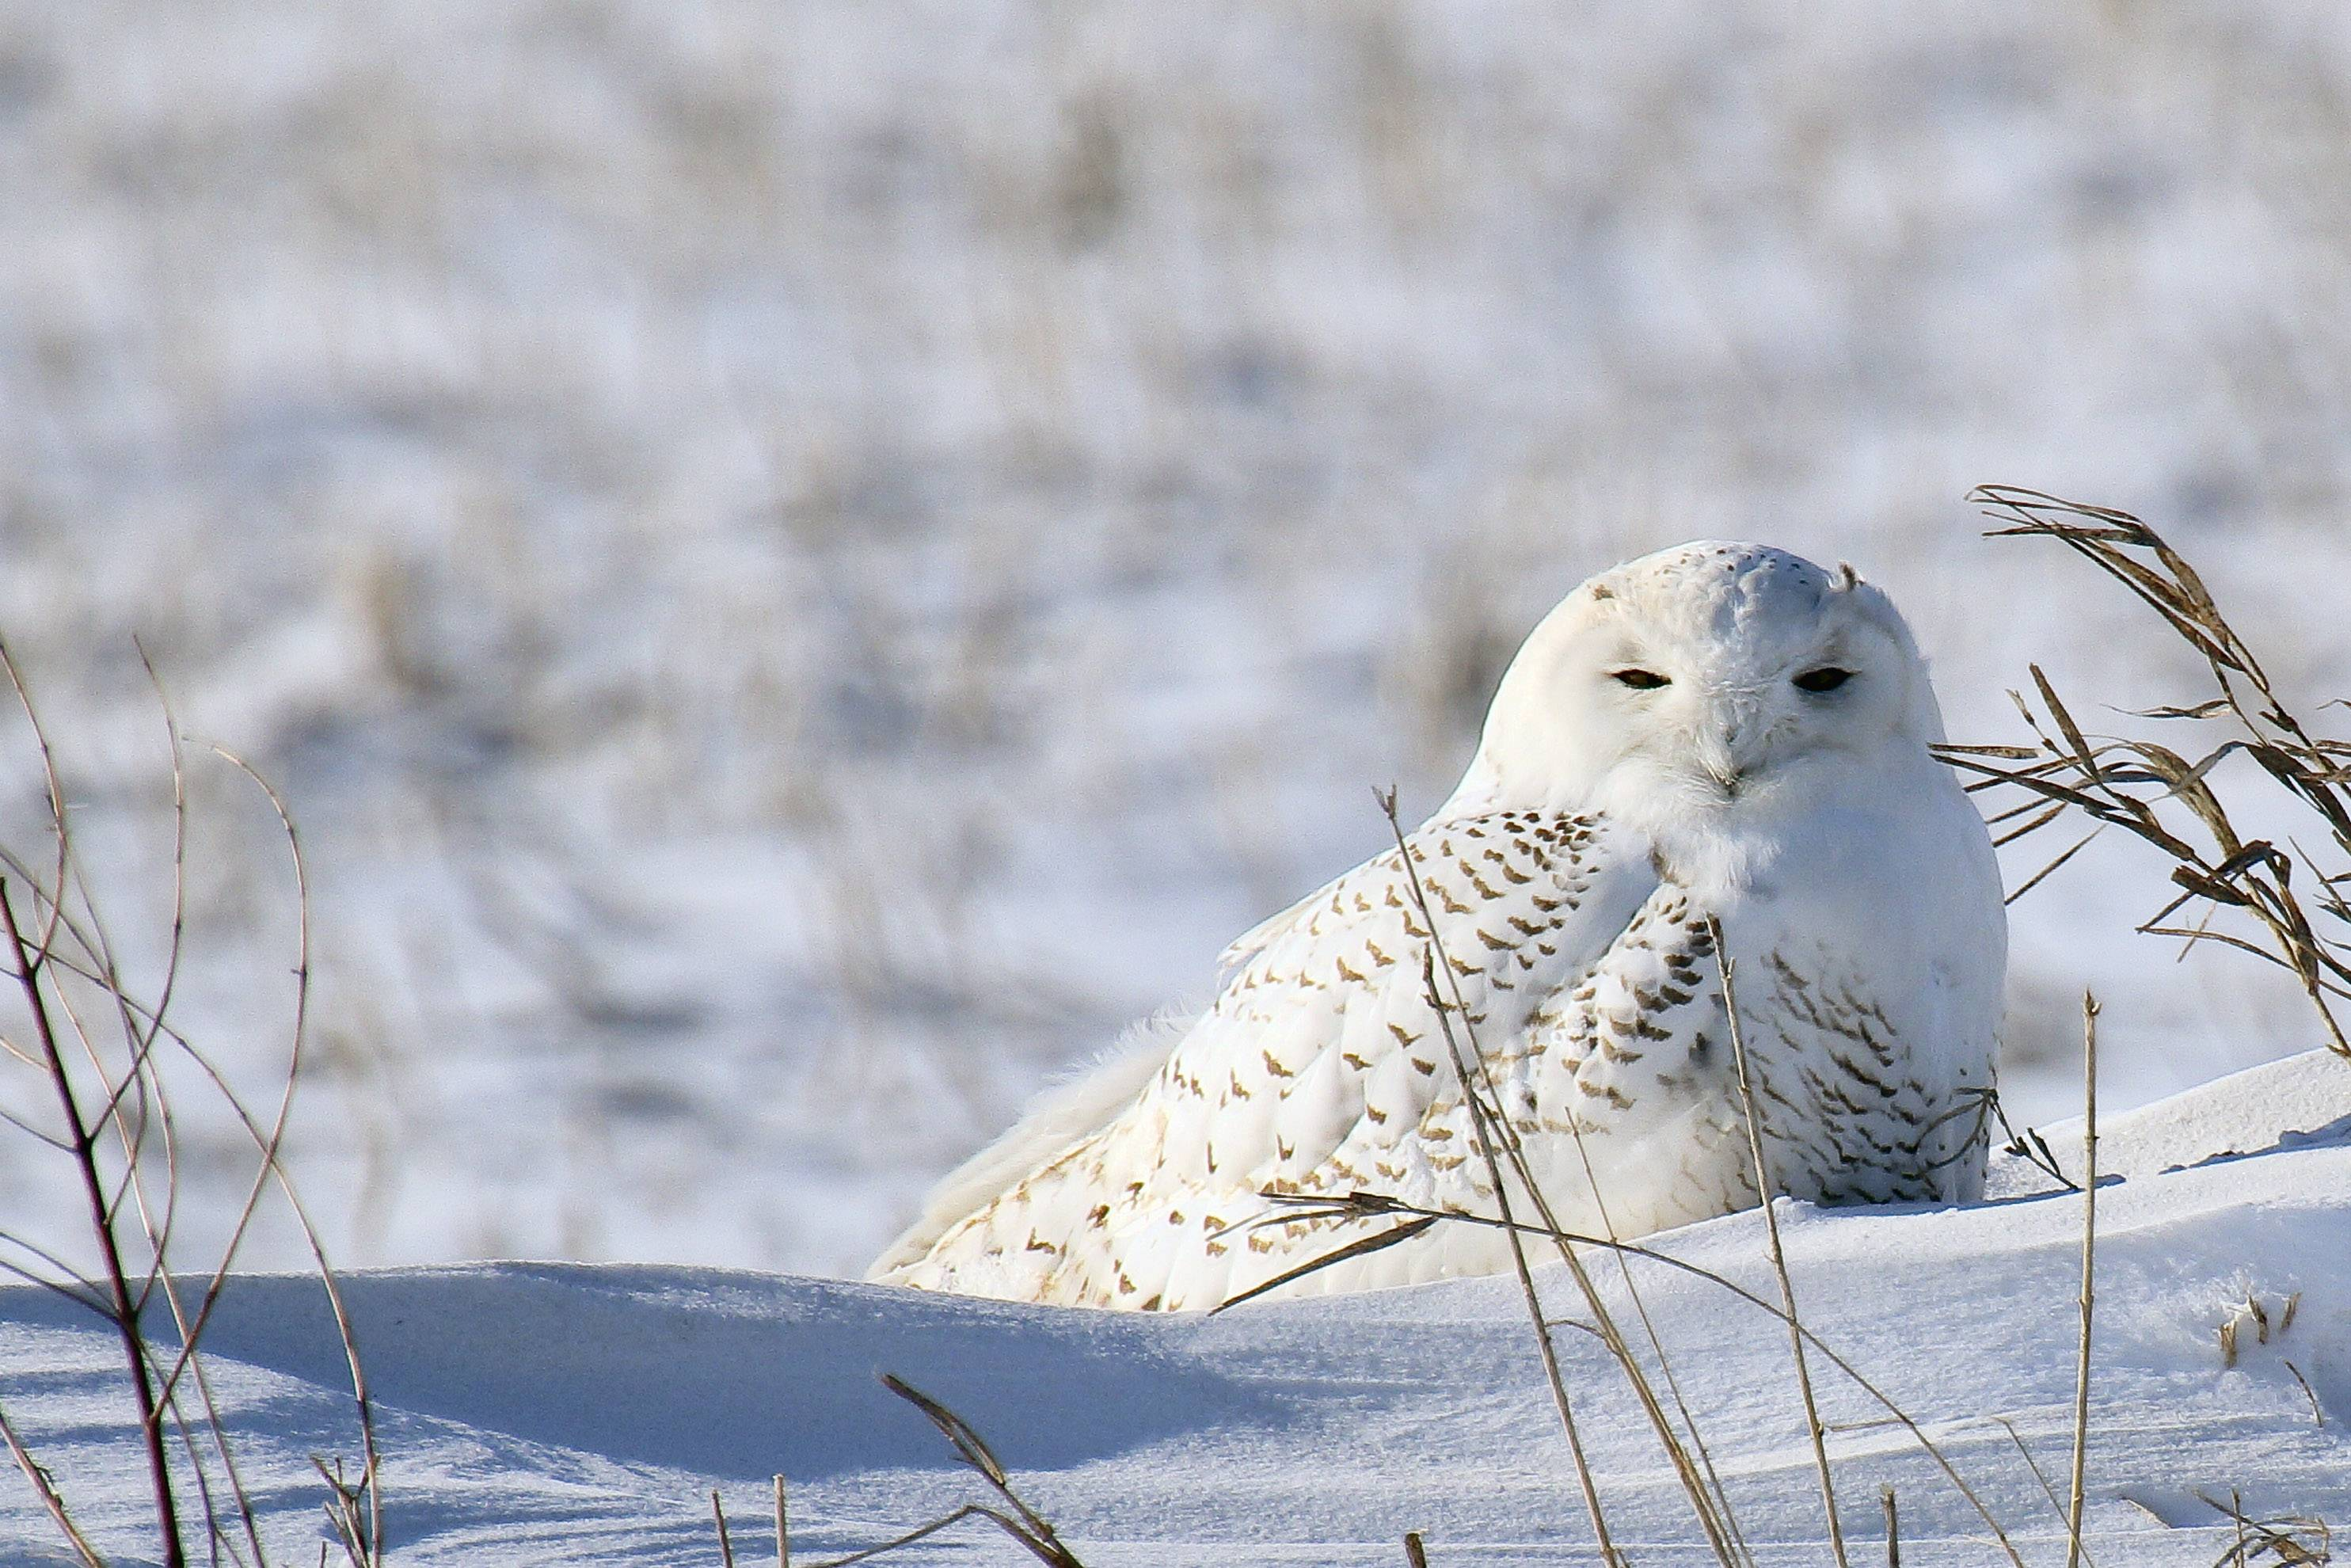 Frigid temperatures and an hour + drive to Lee Co. did not stop me from photographing this rare and beautiful Snowy Owl.